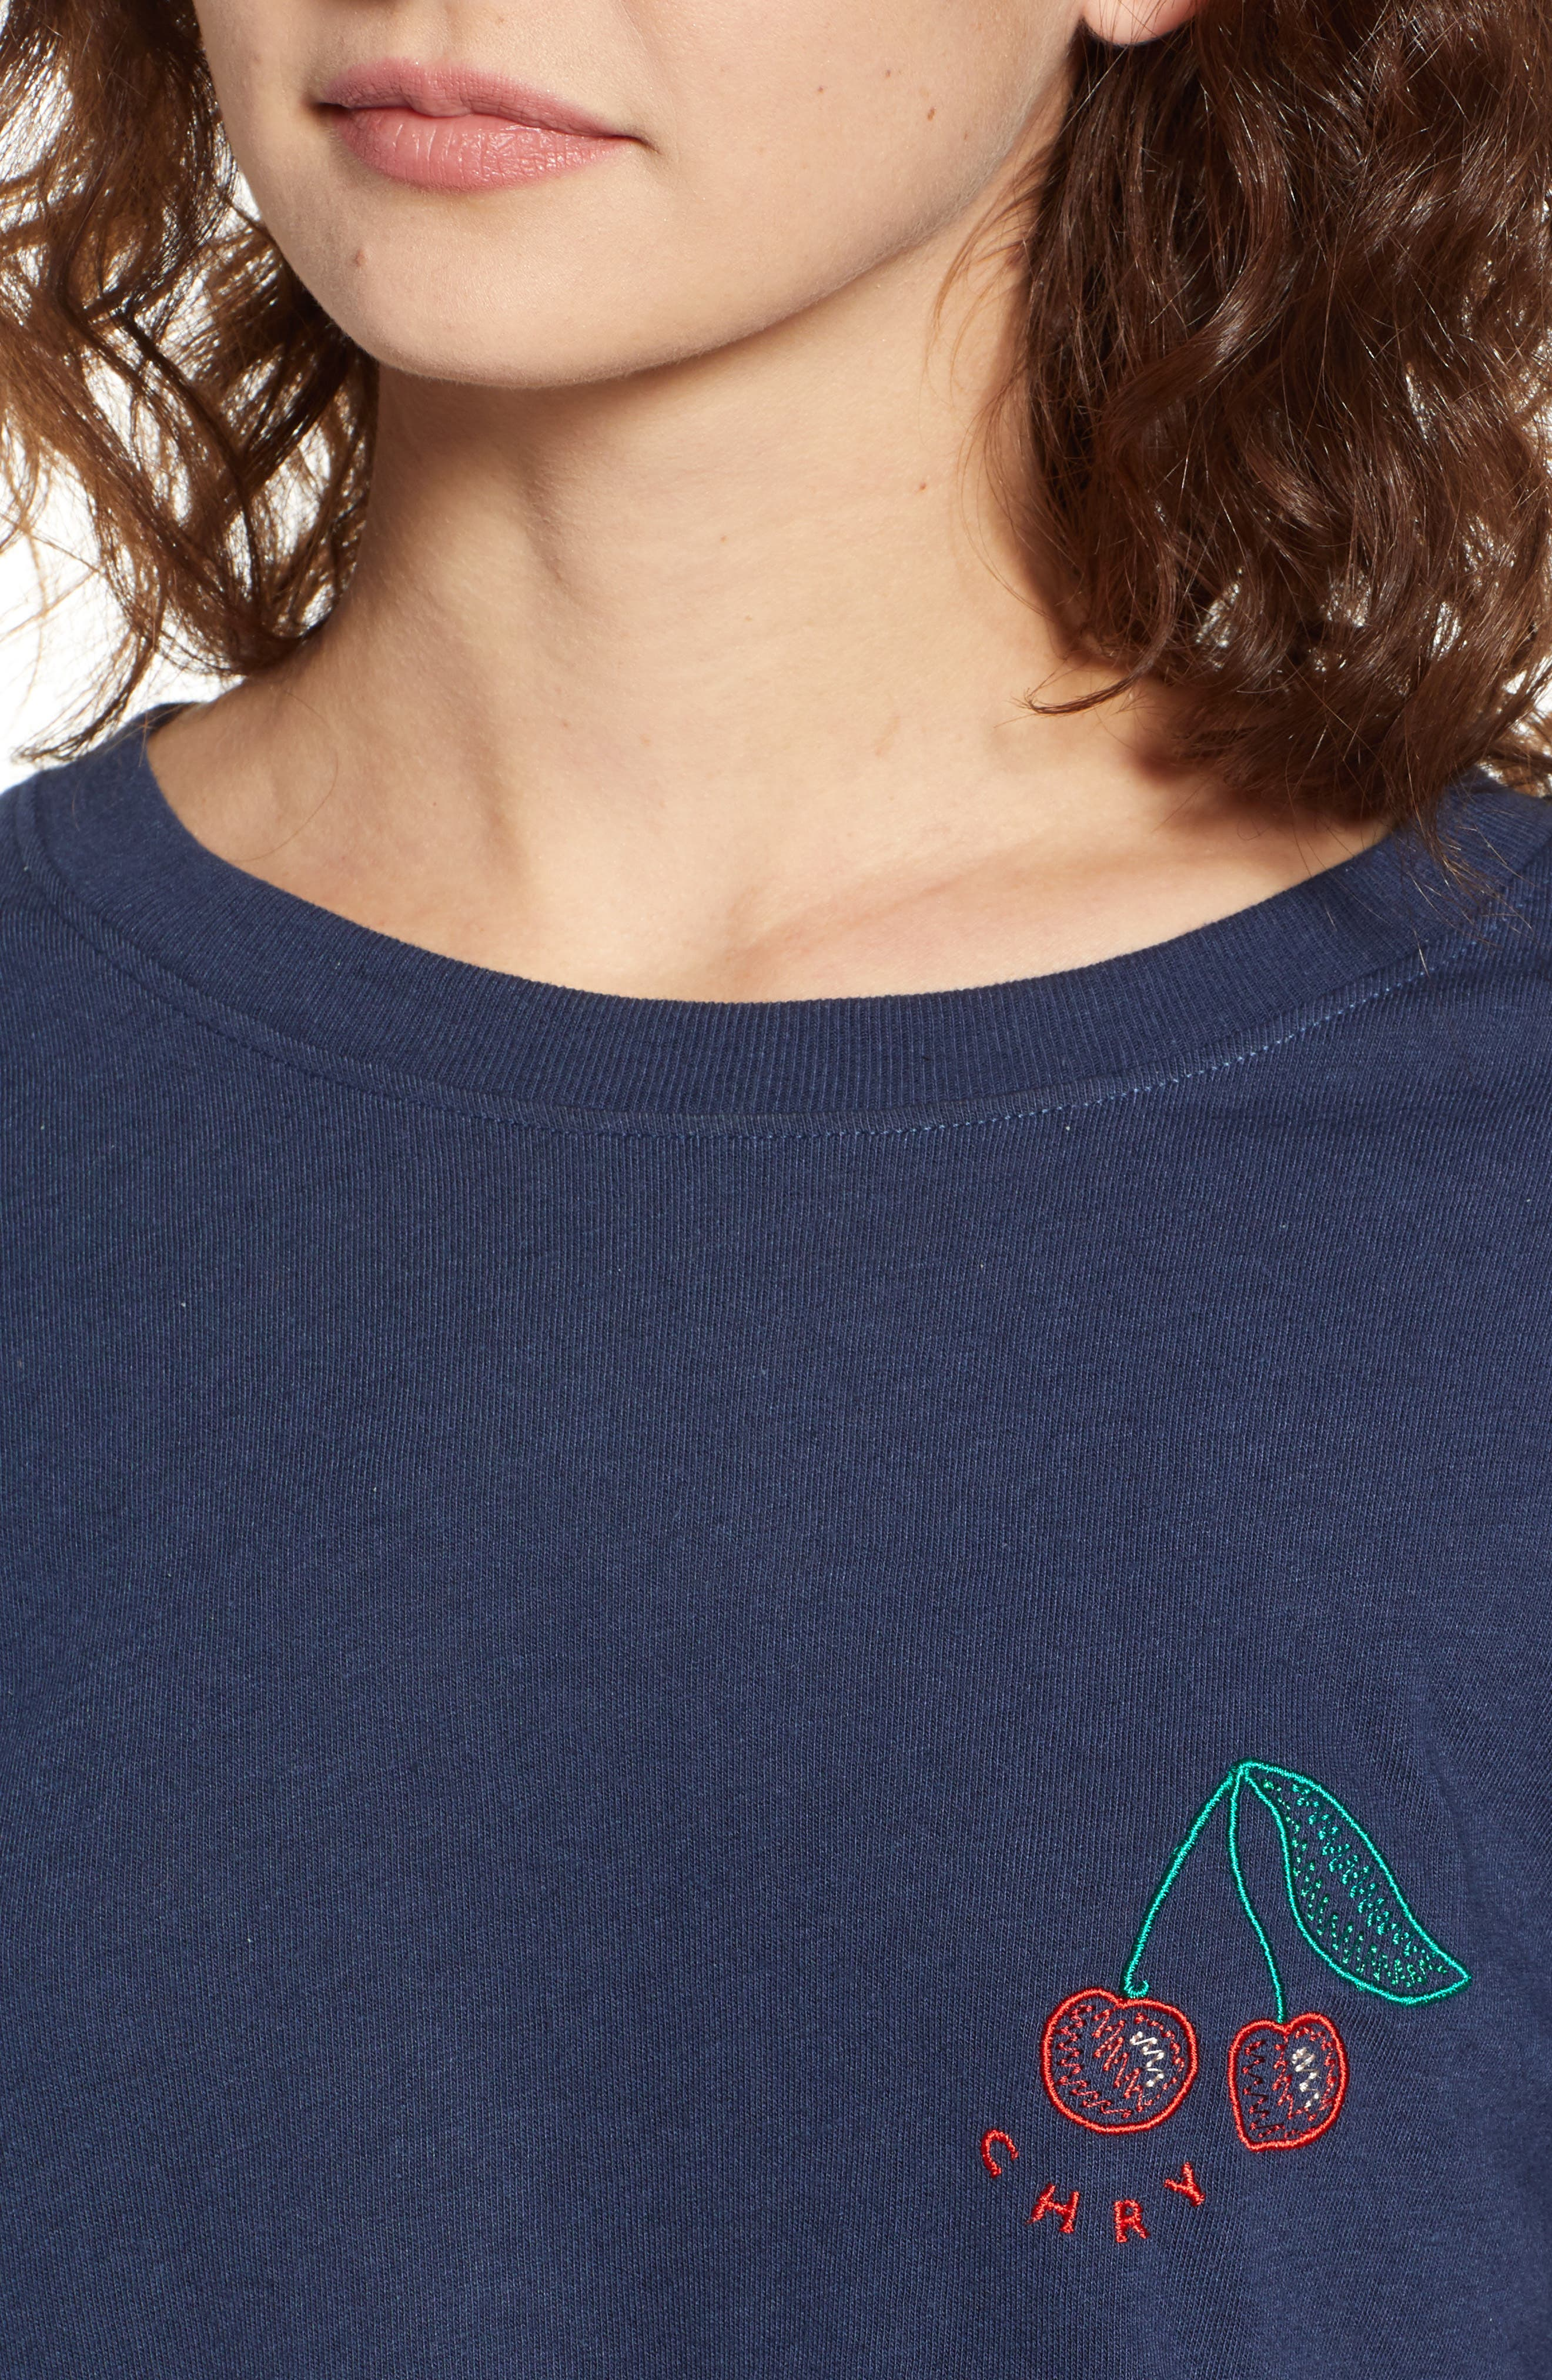 Cherry Slouched Tee,                             Alternate thumbnail 4, color,                             Navy